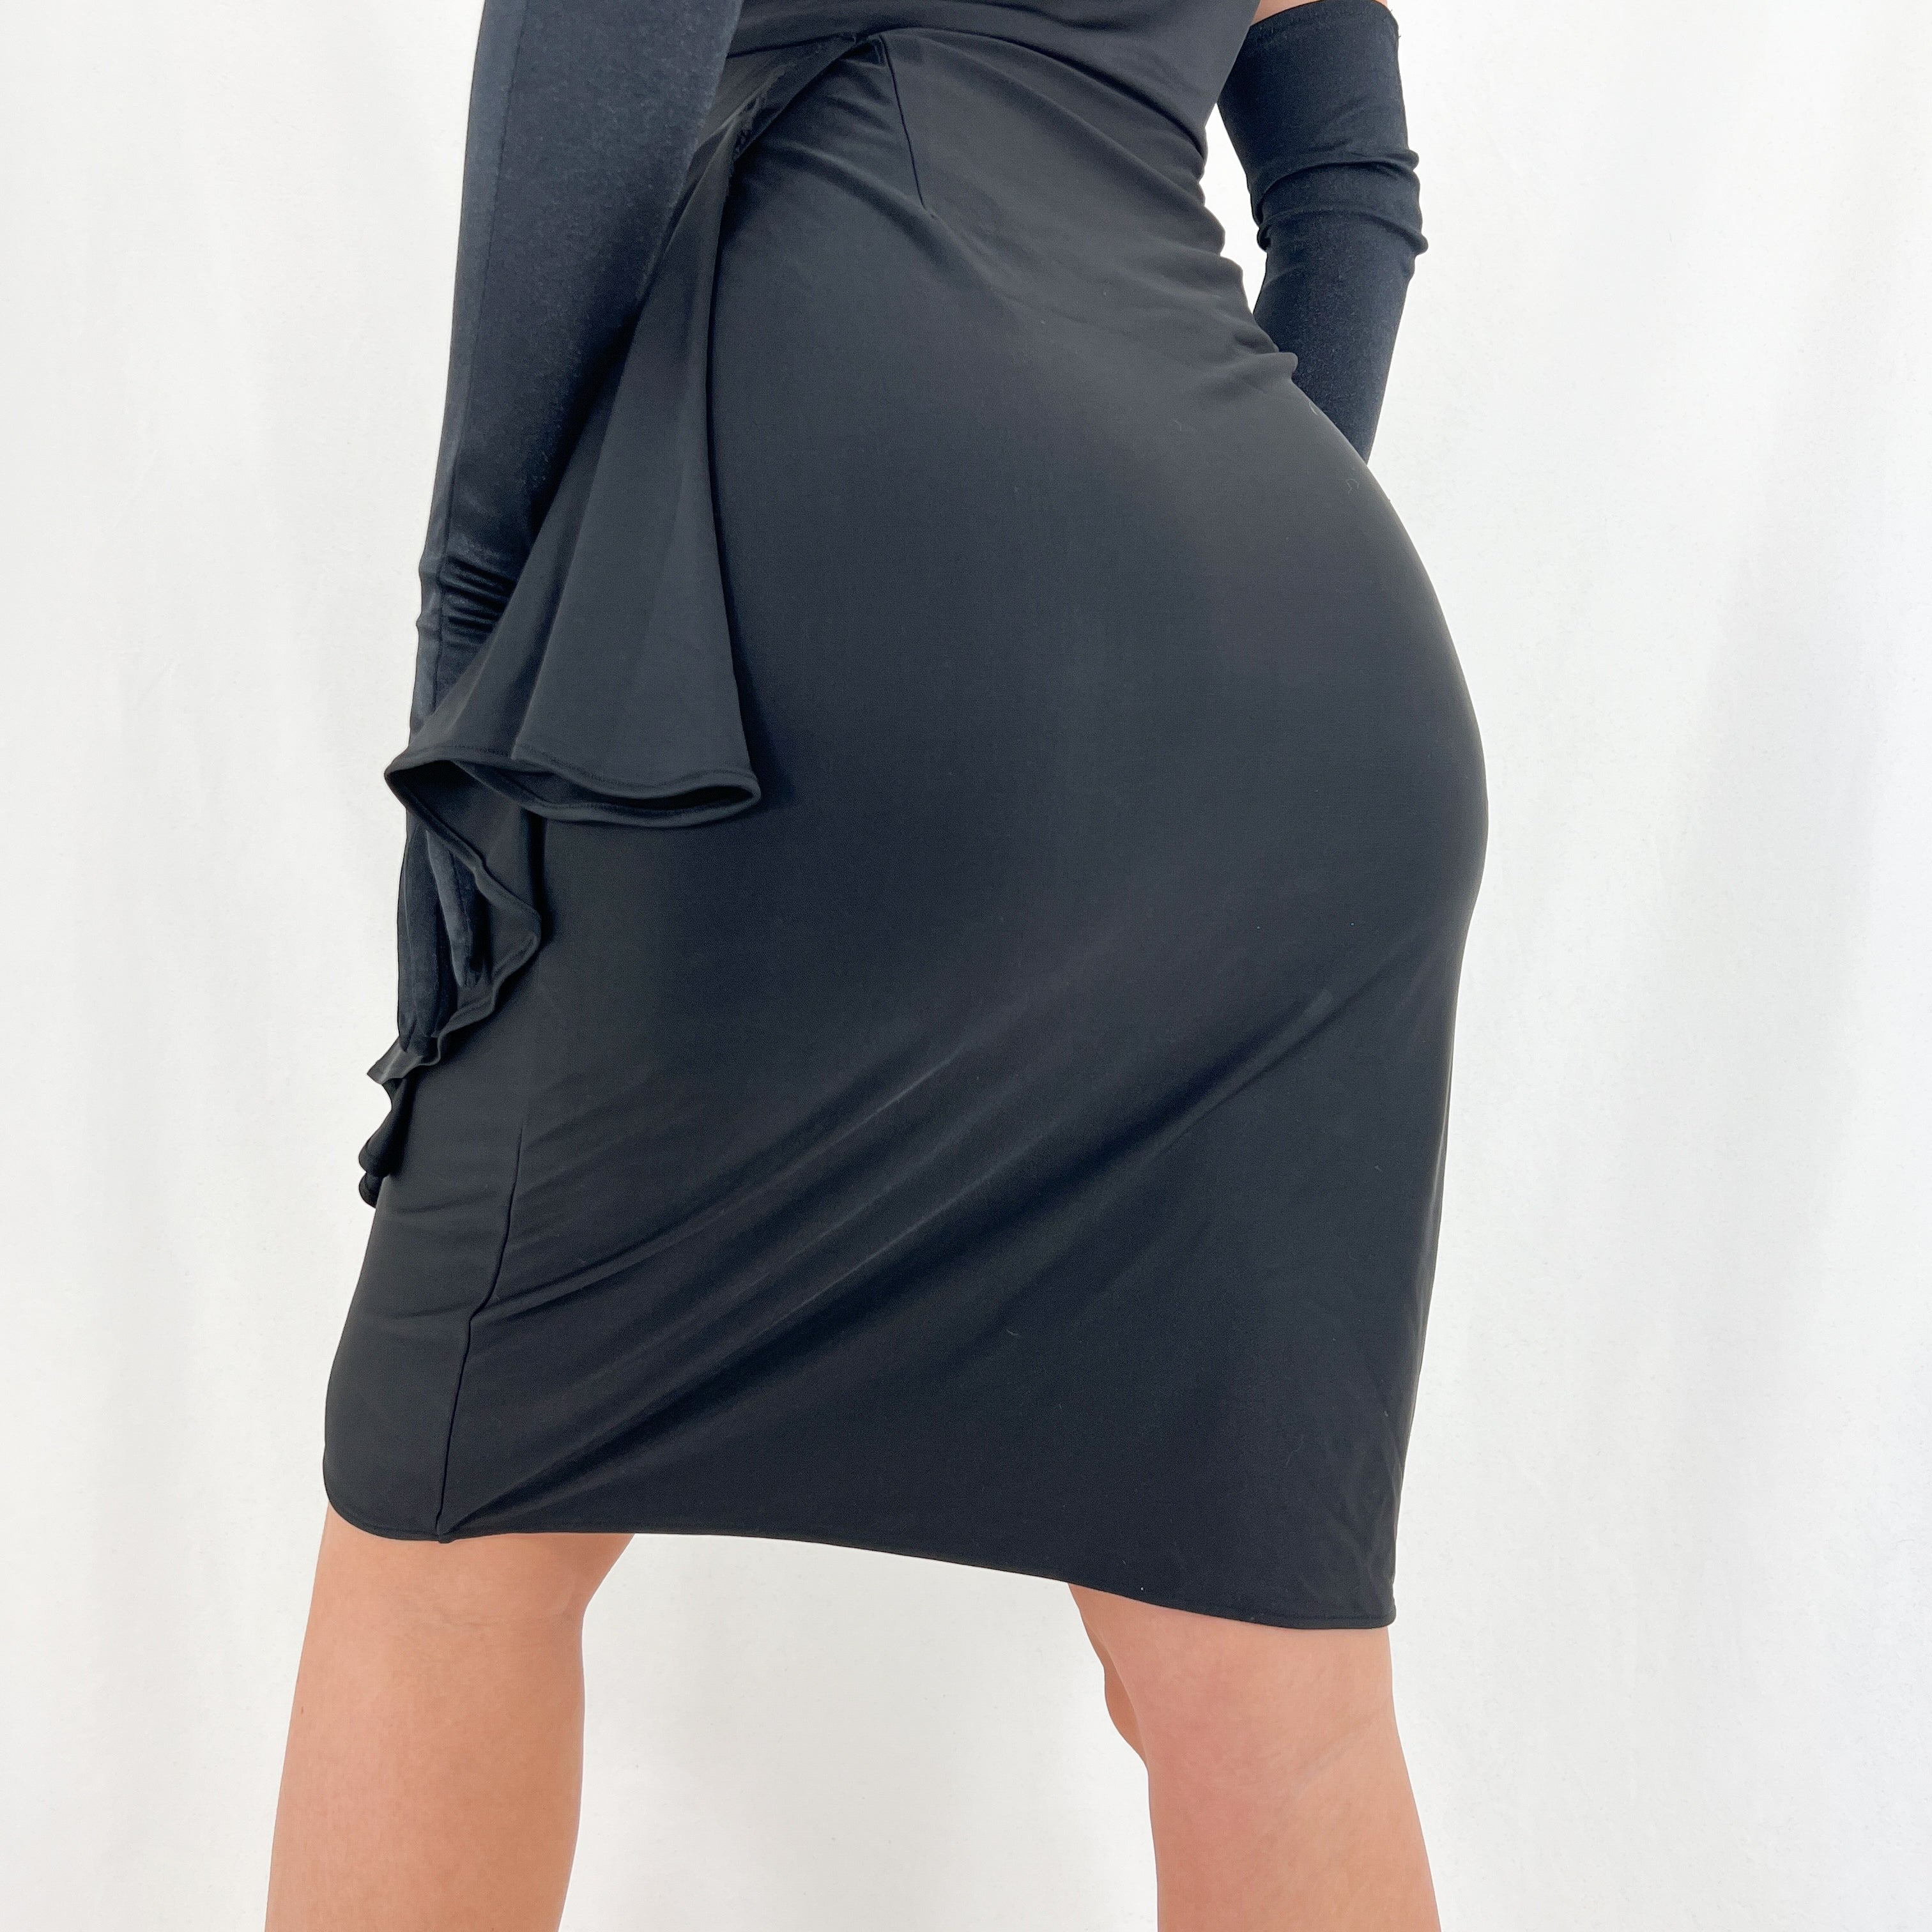 90s Black Halter Ruffle Dress [M]